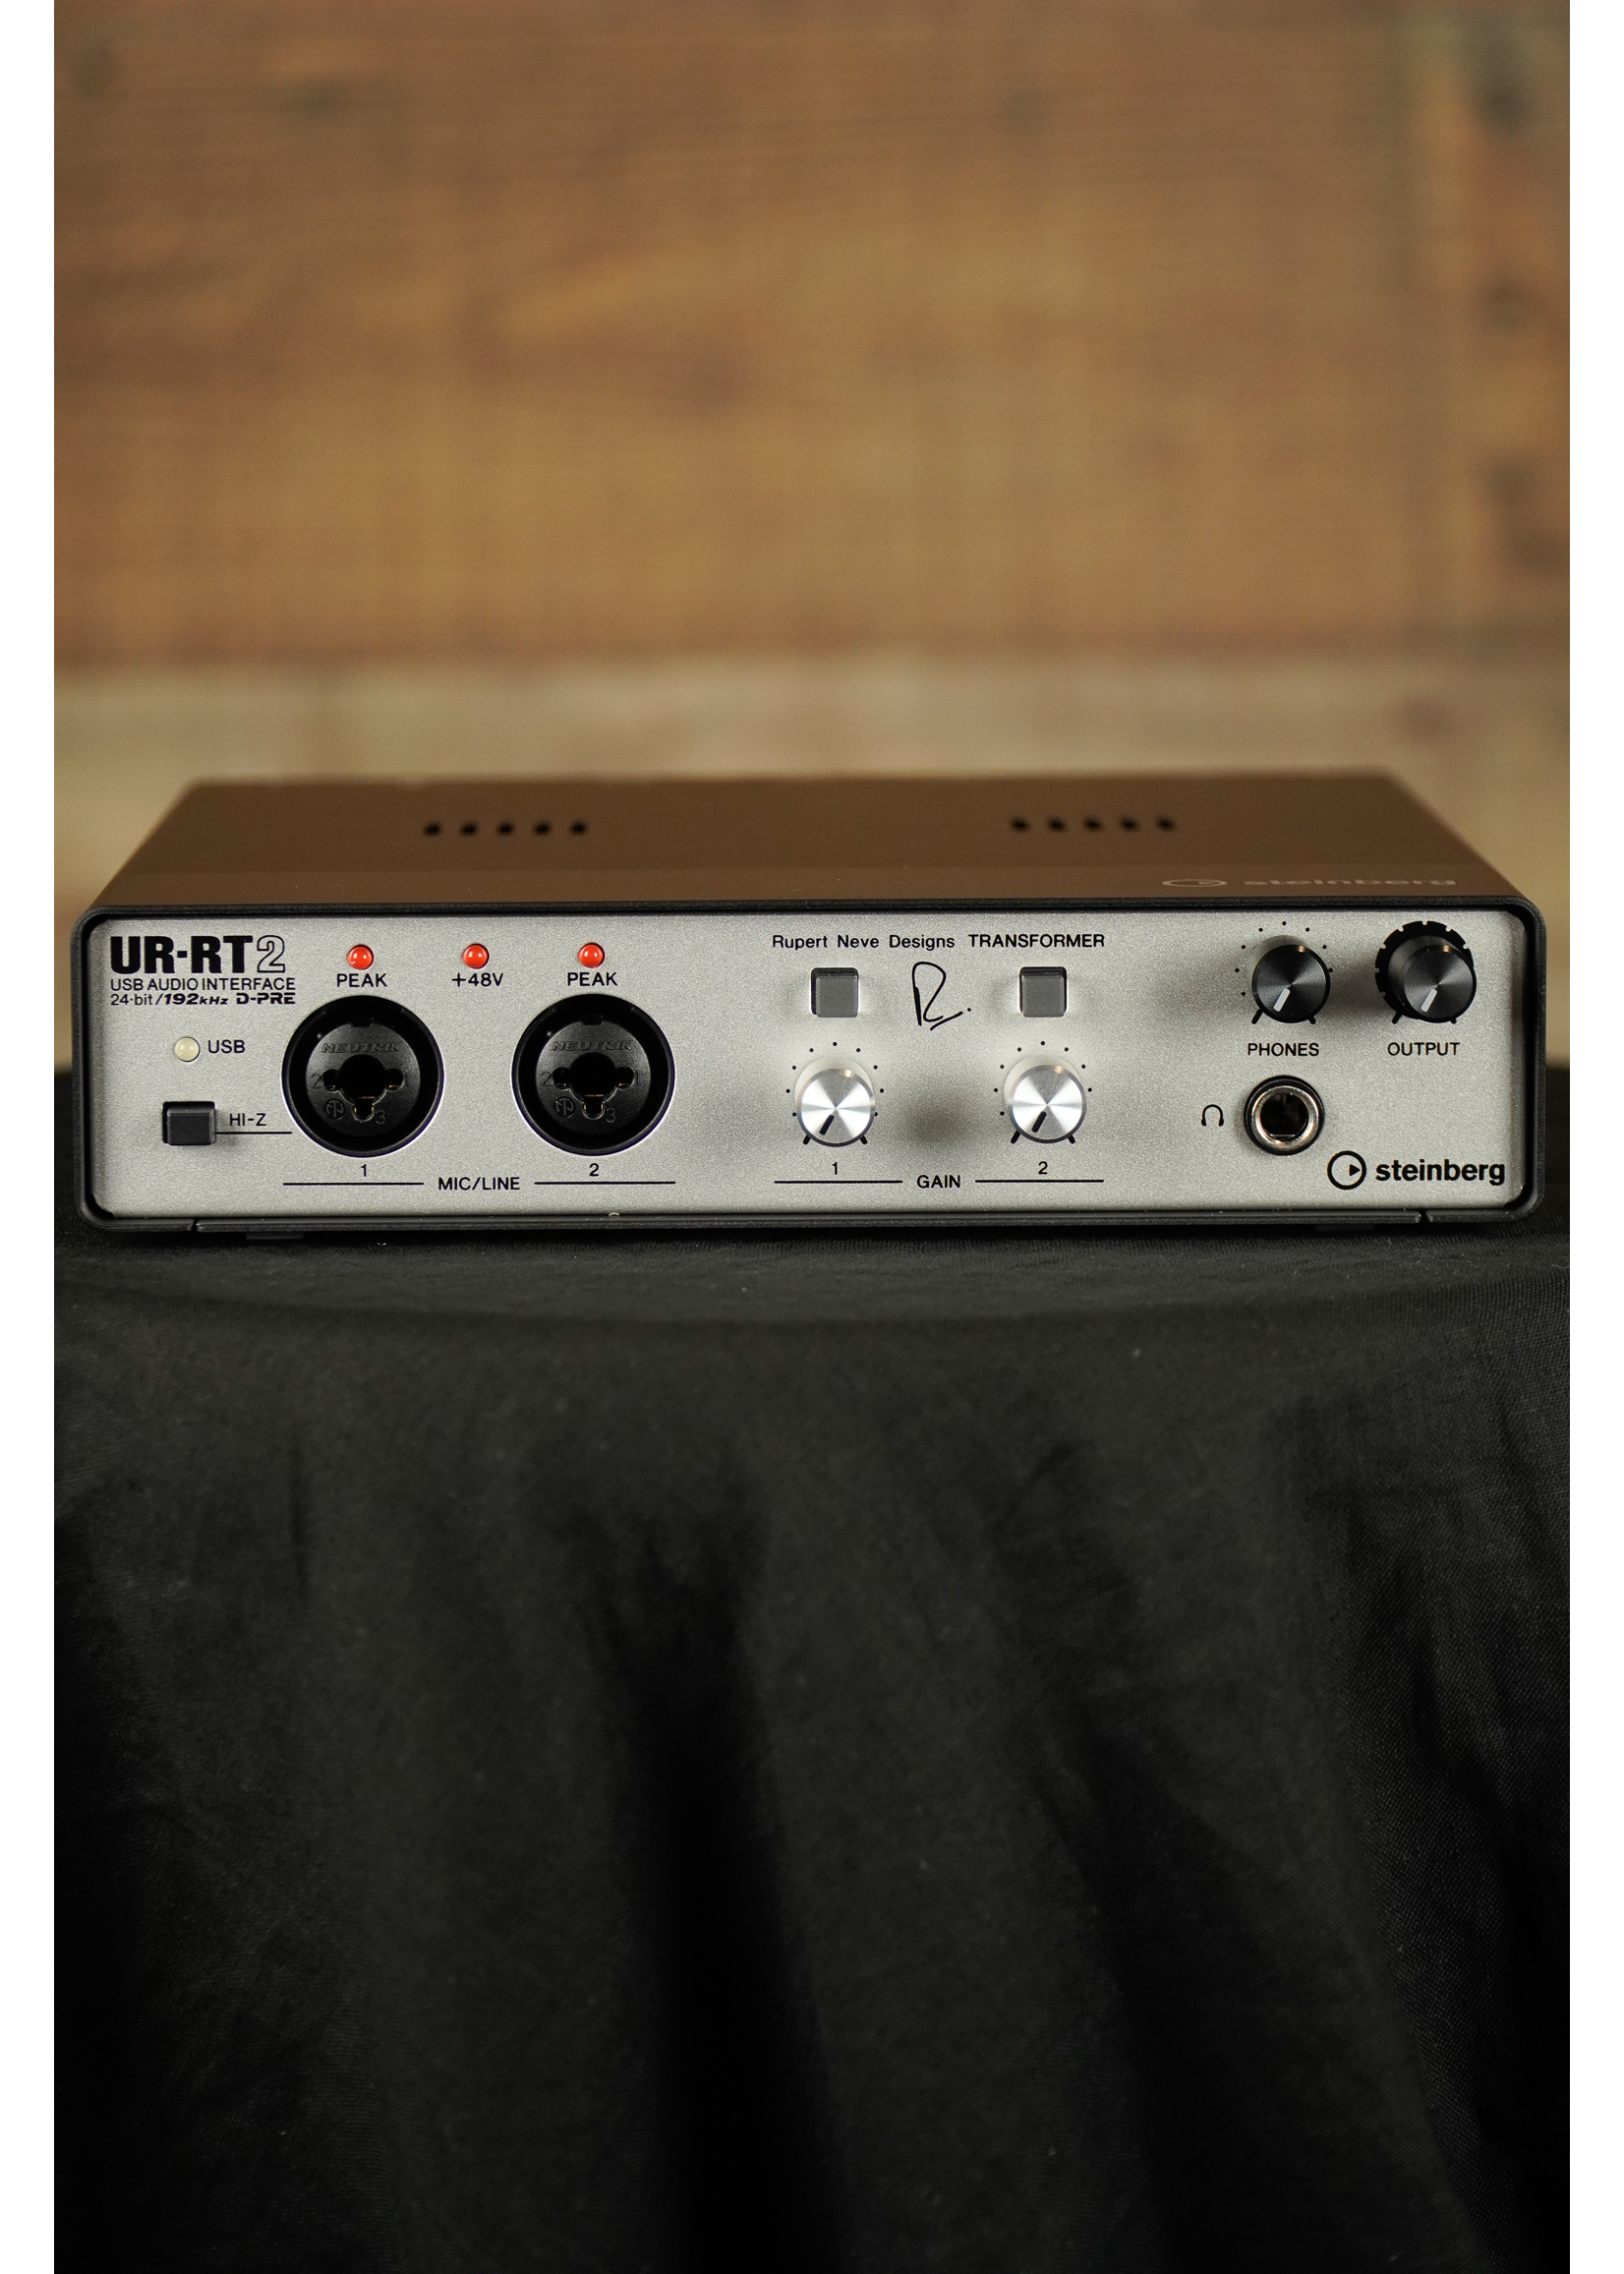 Steinberg Steinberg UR-RT-2  USB Interface with Transformers by Rupert Neve Designs